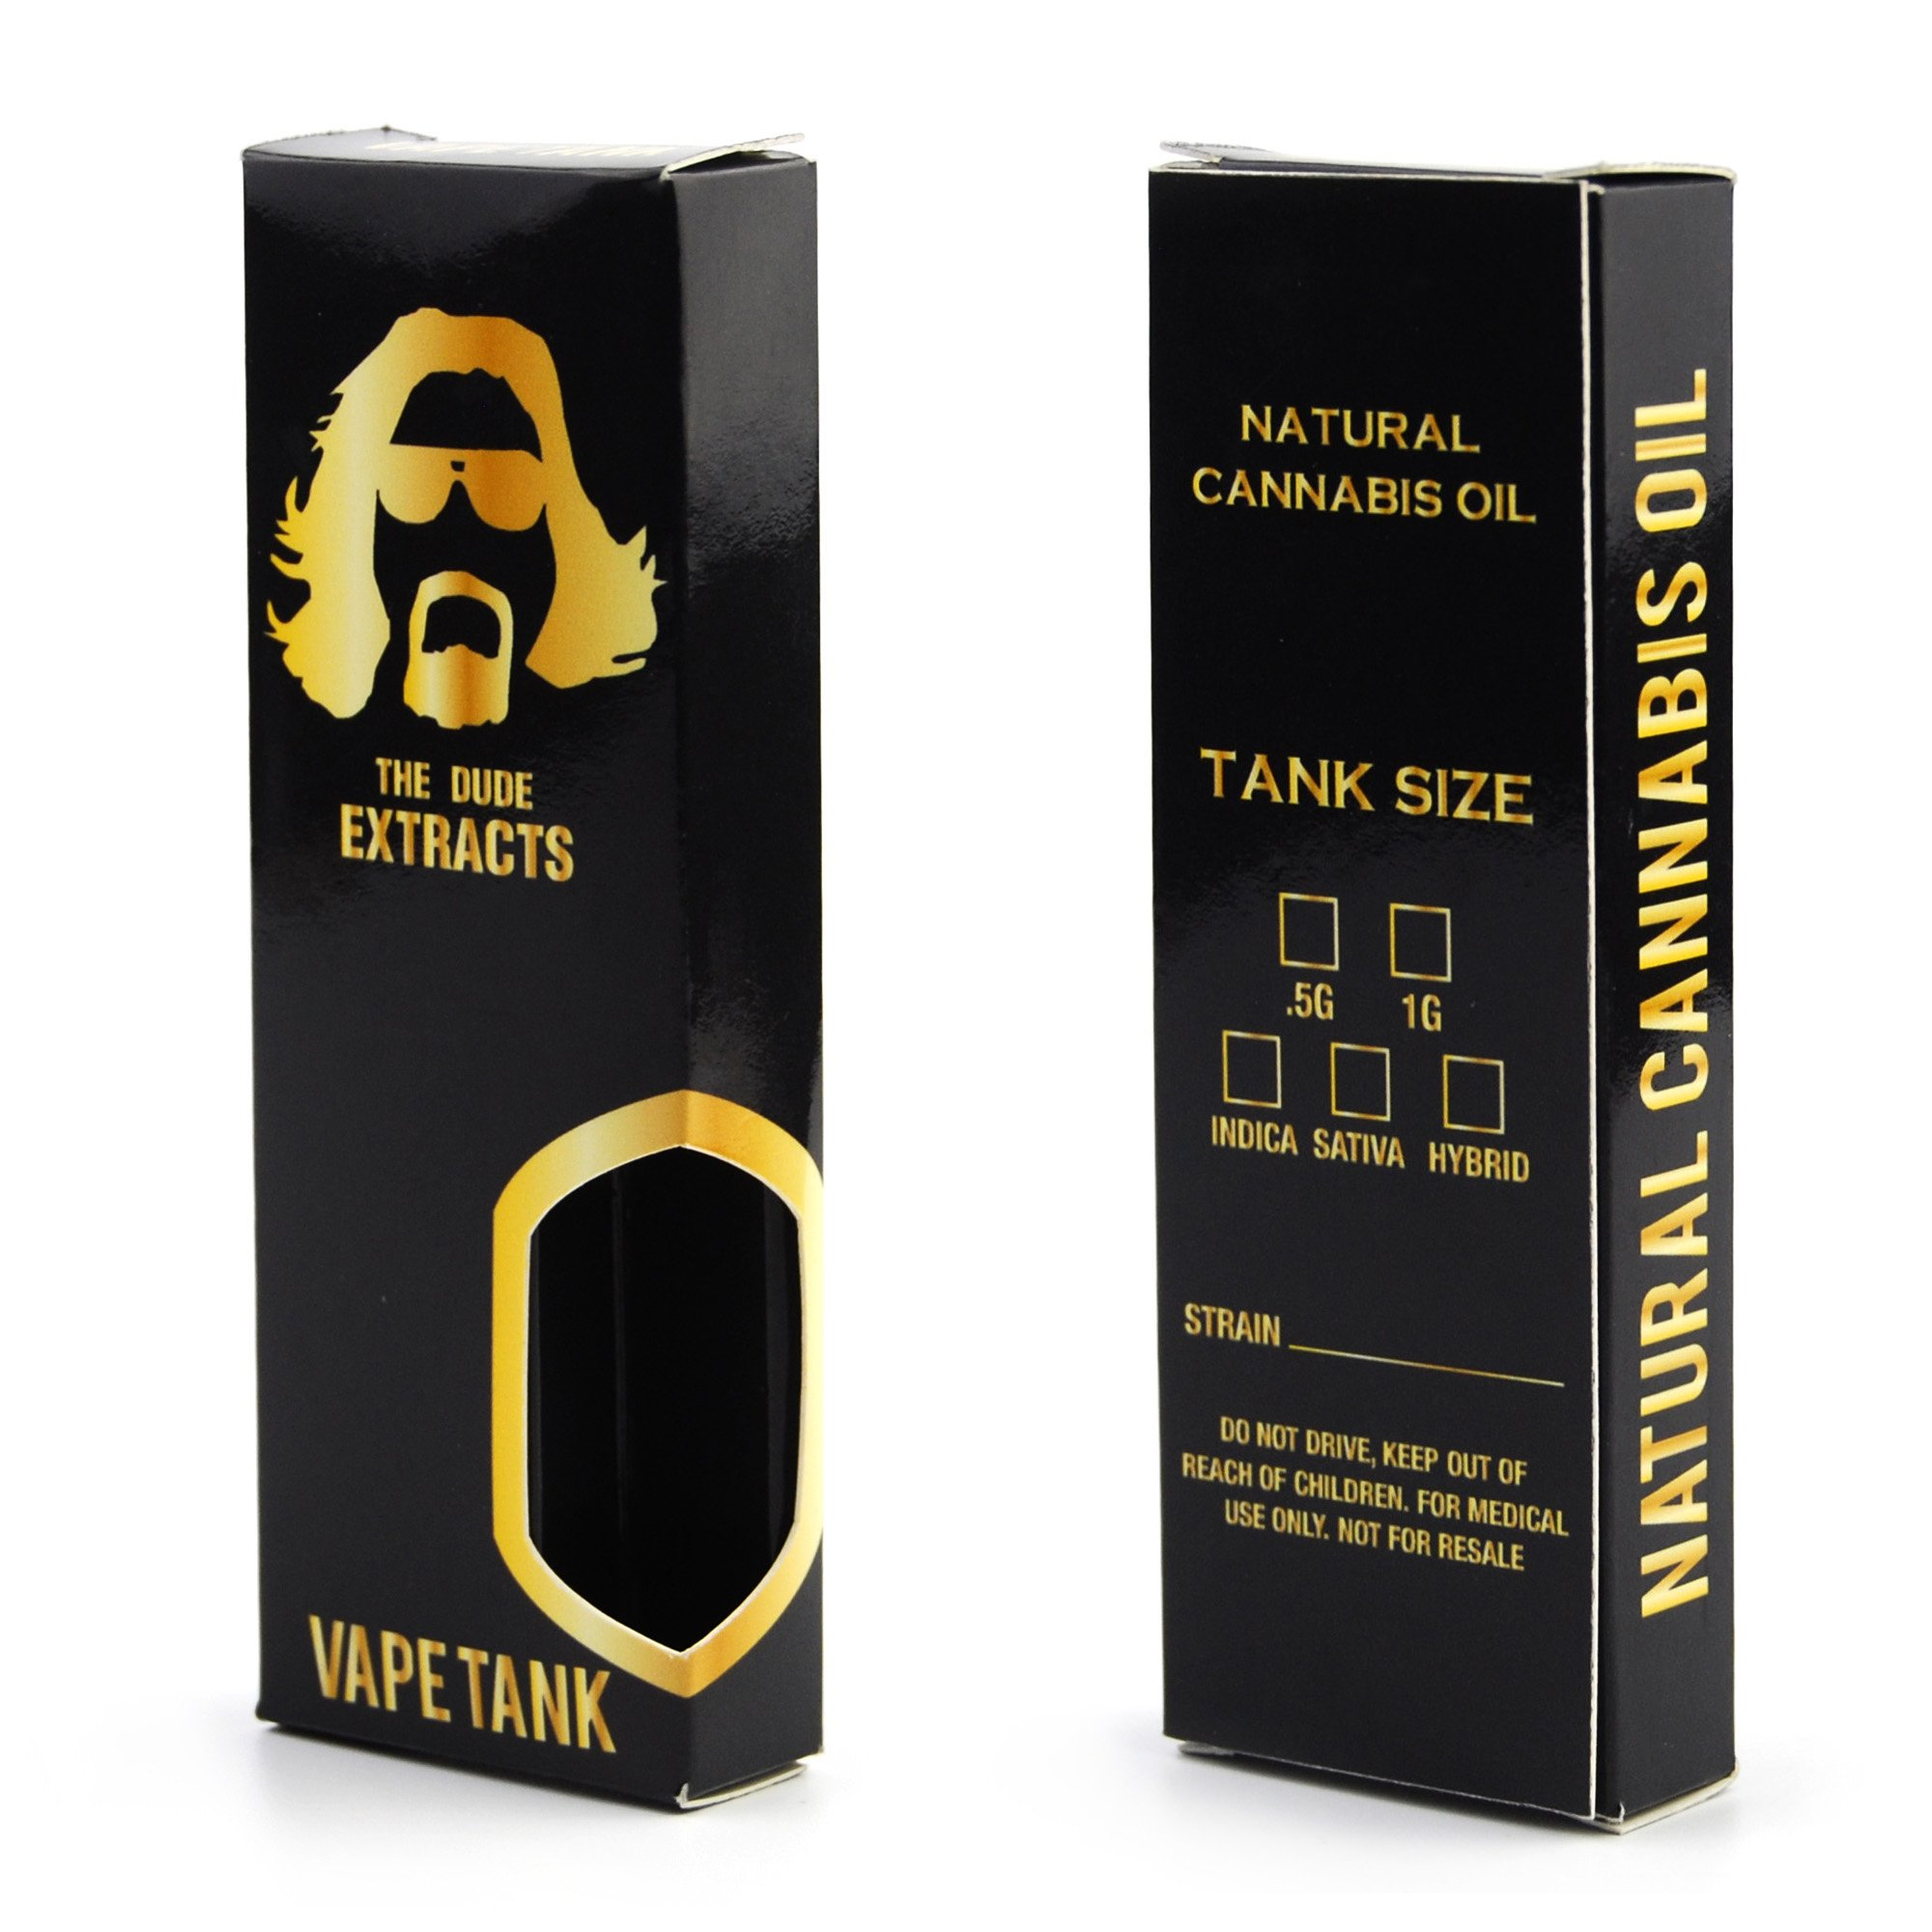 25 The Dude Extracts King Sized Tip Window Display Concentrate Boxes VB-009